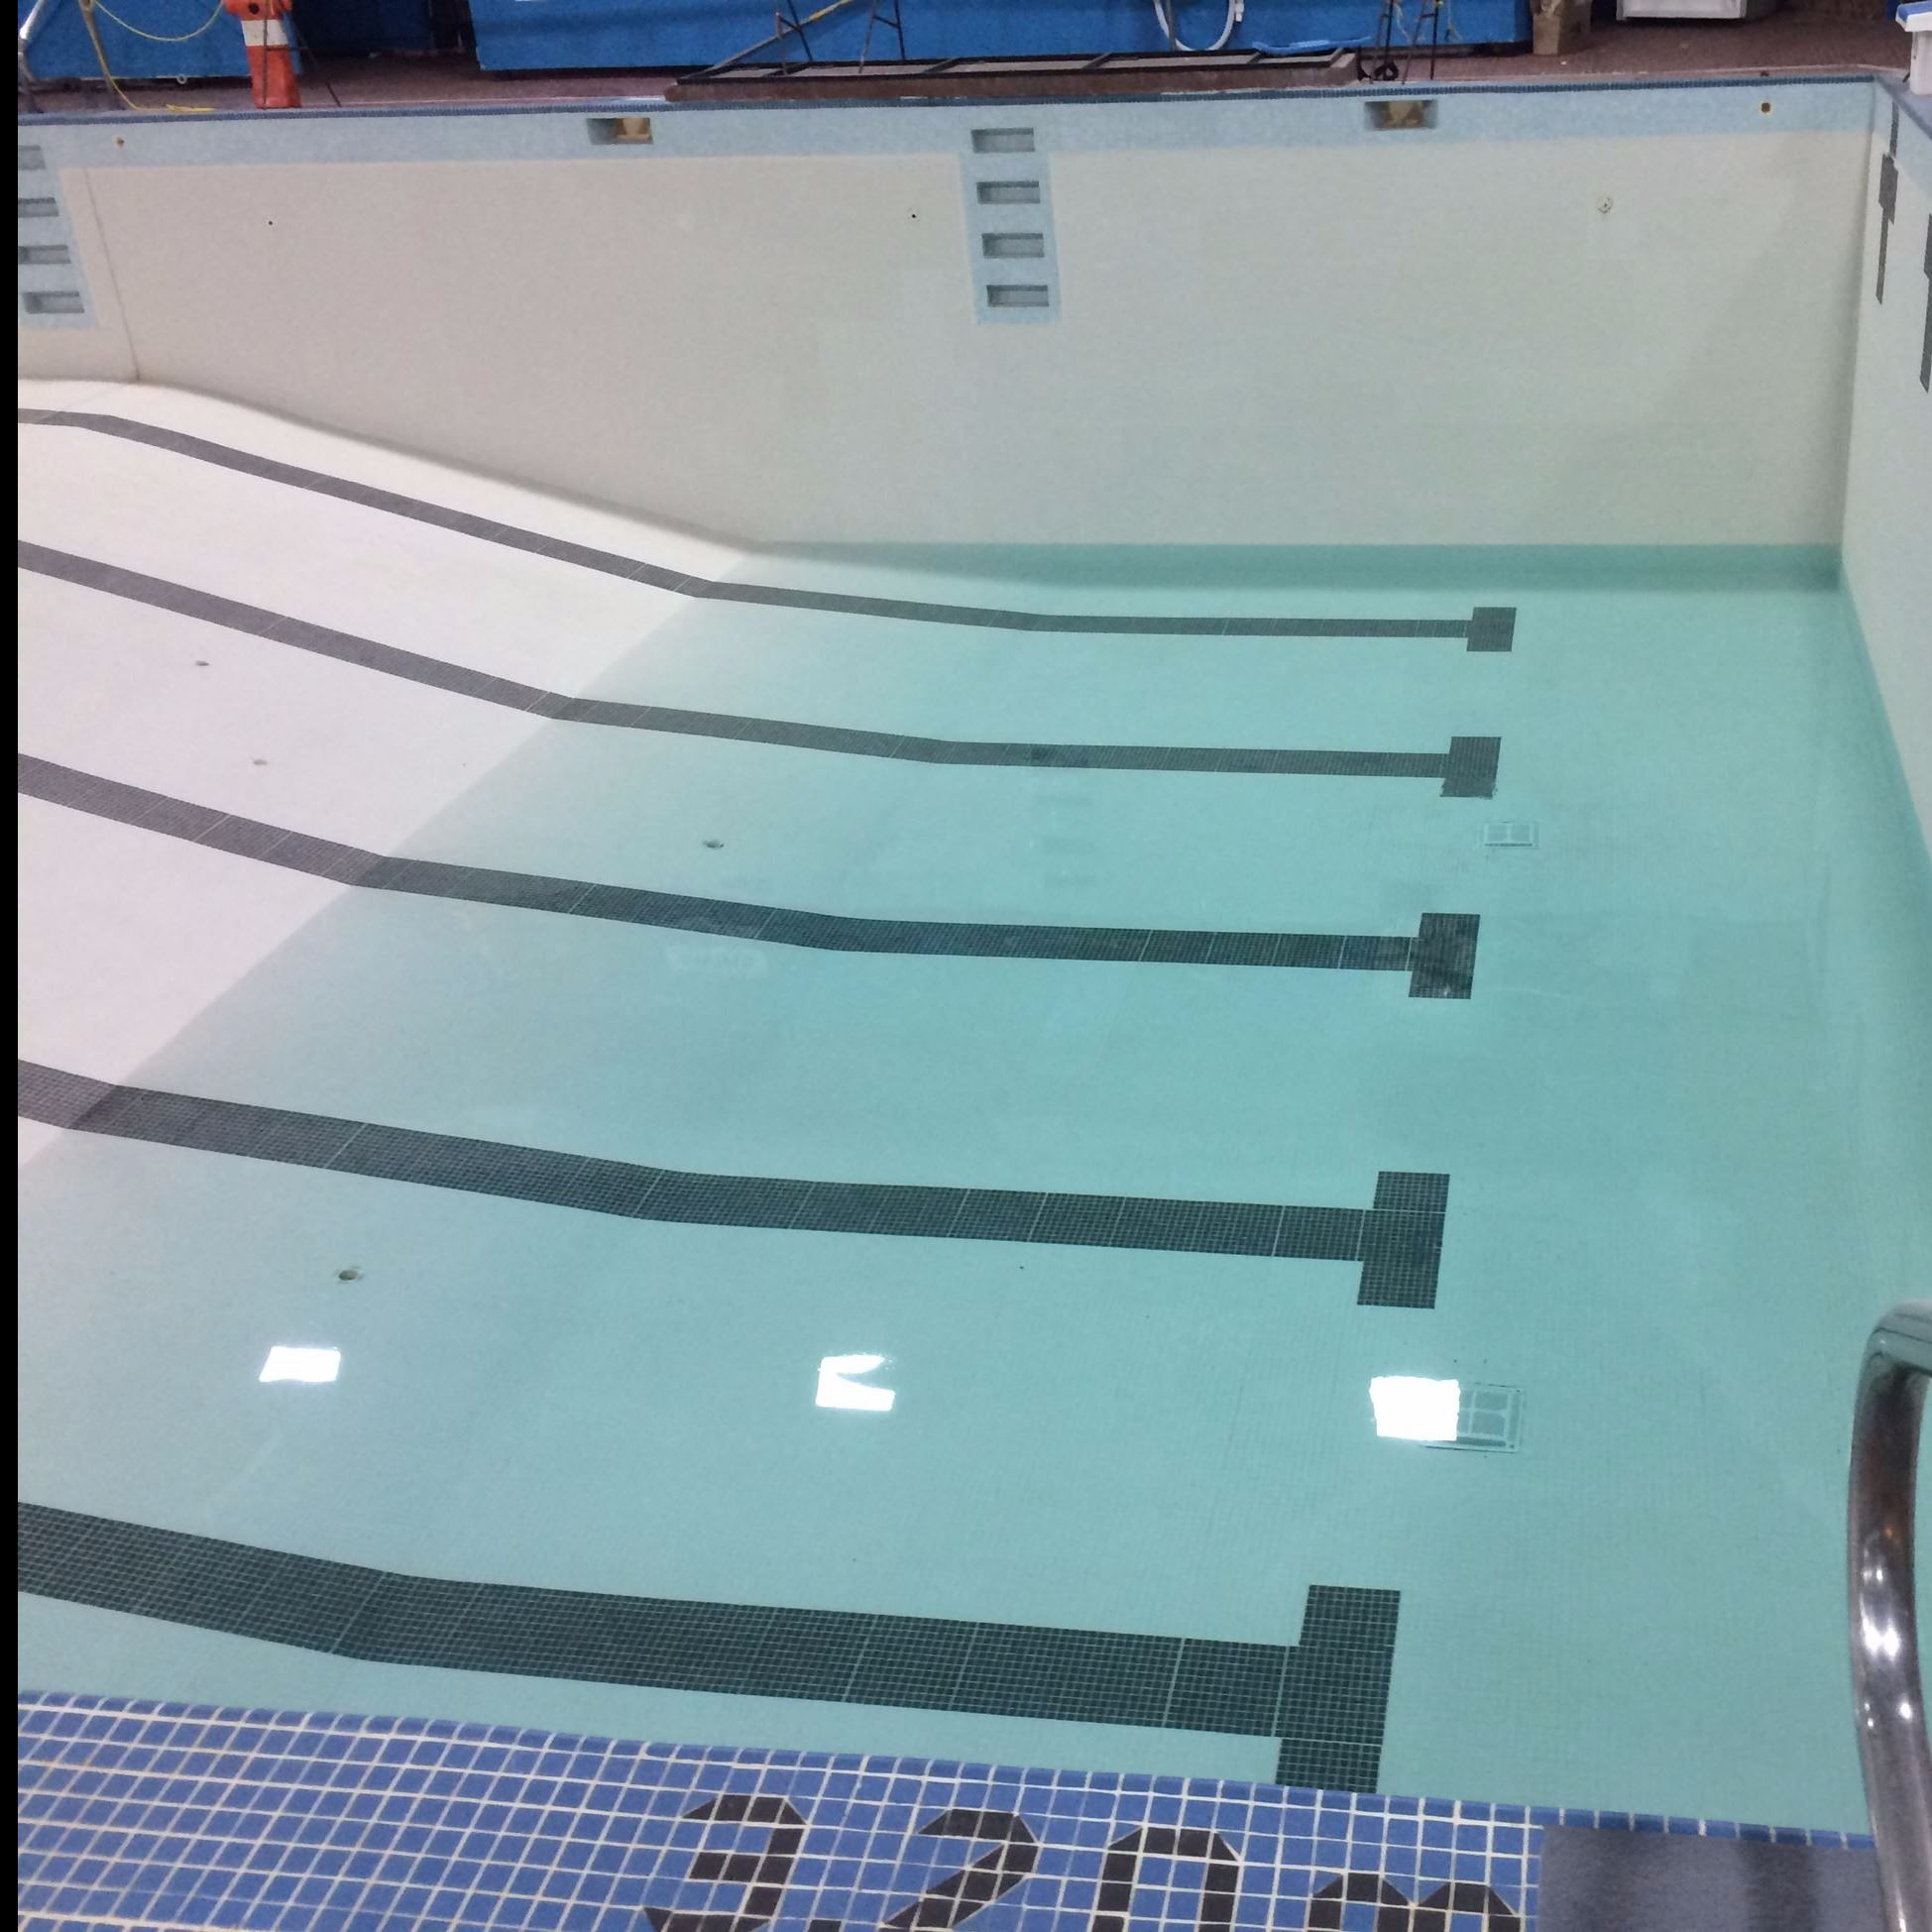 When the pit begins to fill, so does the pool! It may look a little green right now, but when the wa